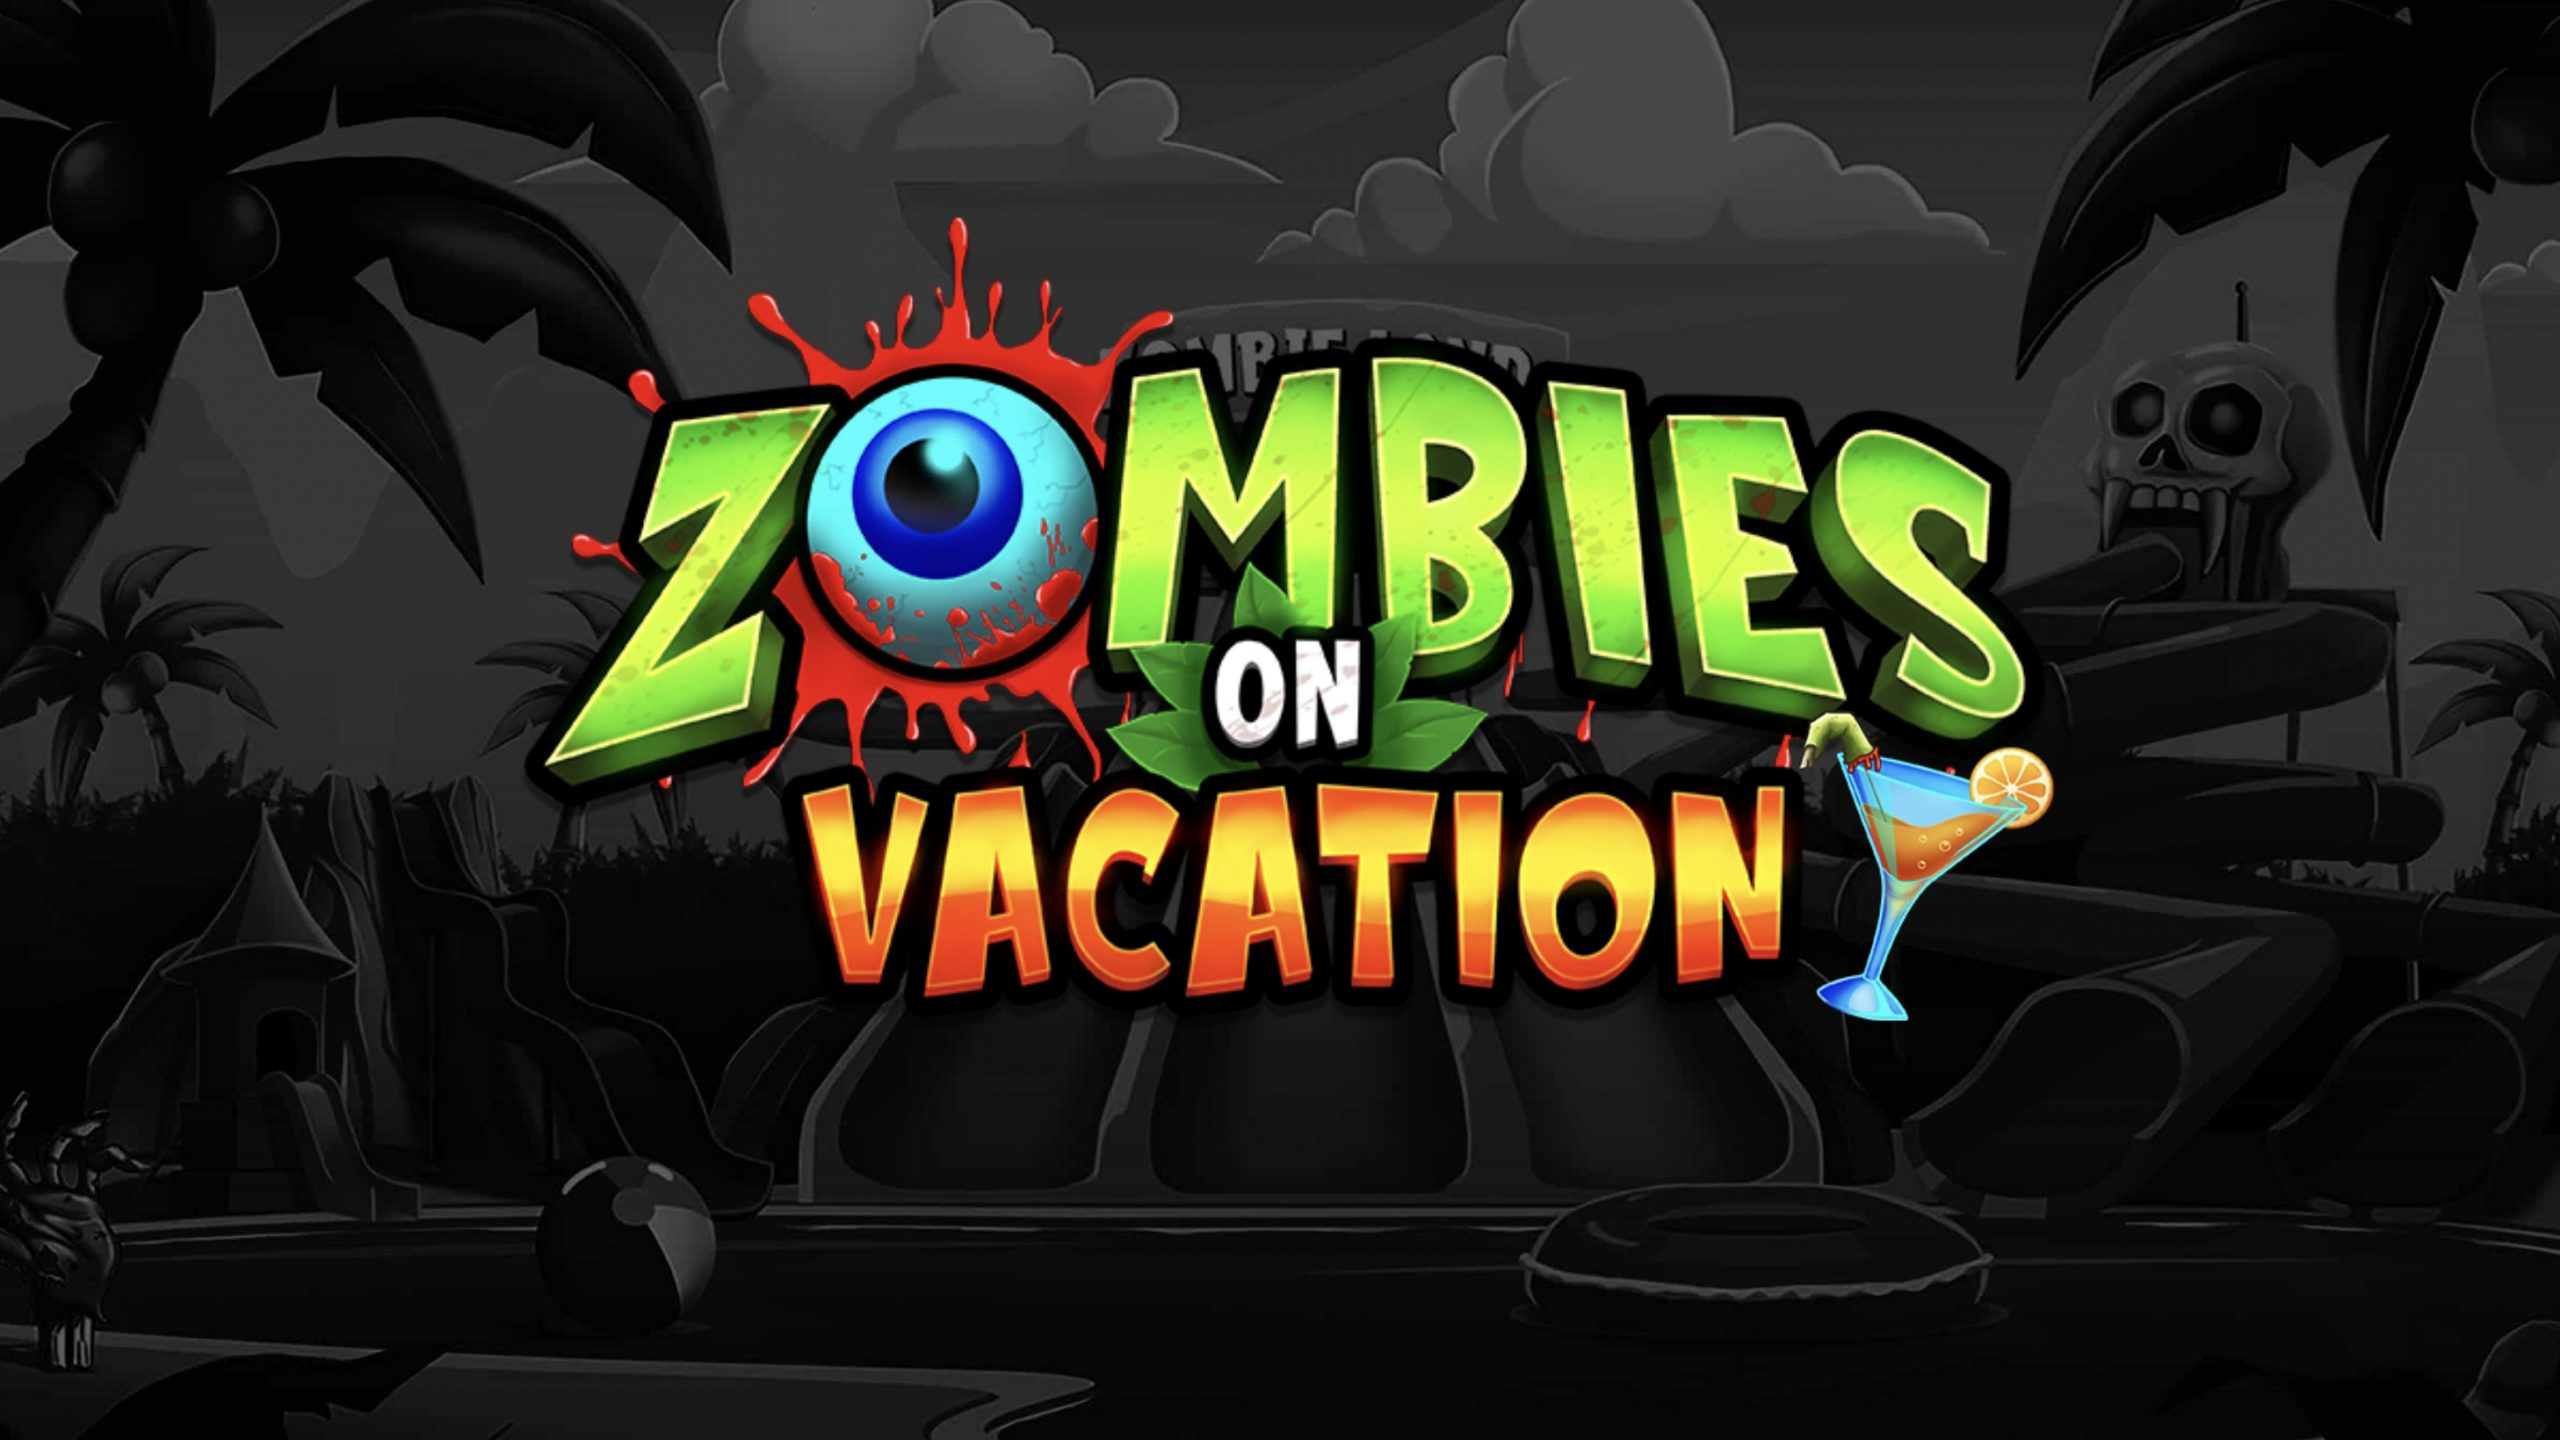 Zombies on Vacation is a 5x3, 243-payline video slot with features including multiplier wilds, a screaming girl icon and free spin options.